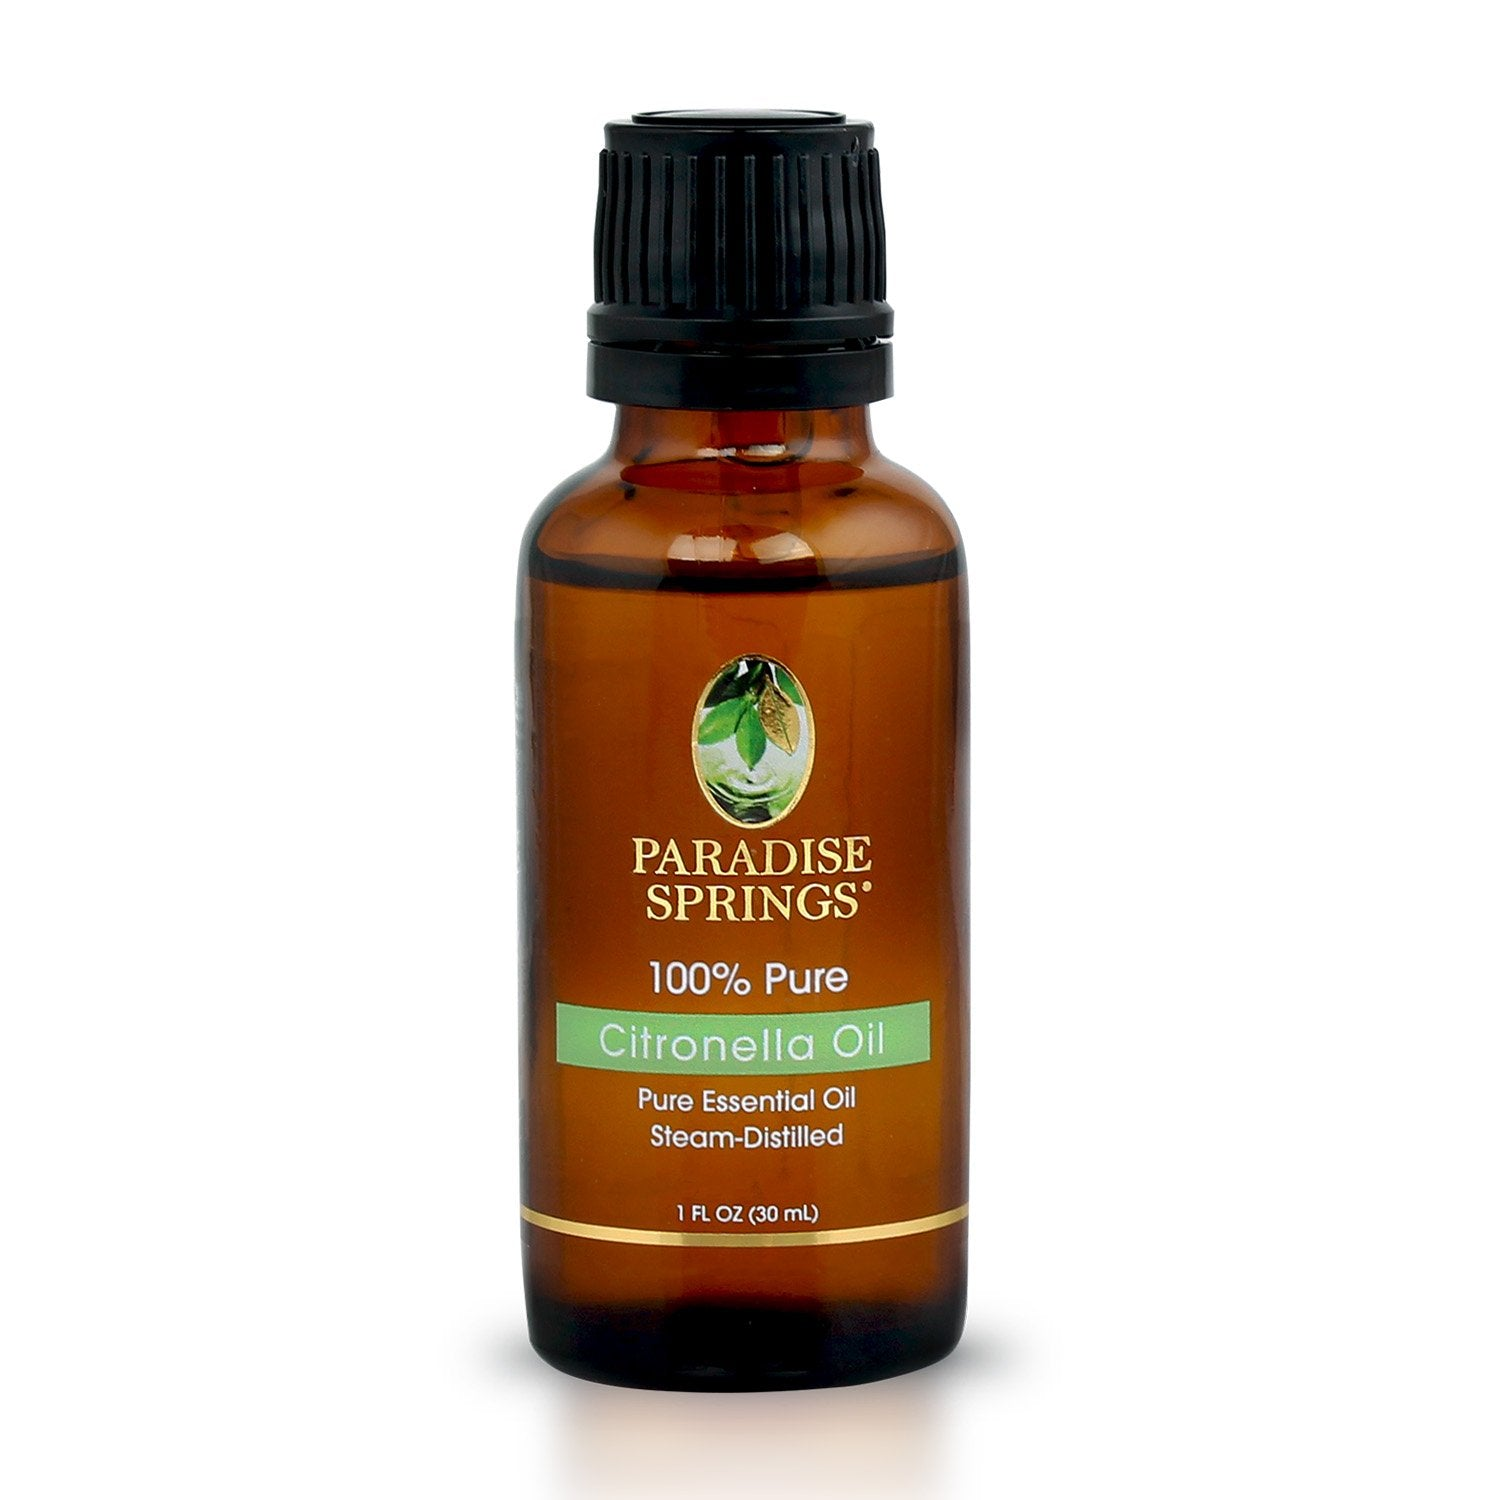 Paradise Springs Citronella Oil Bottle